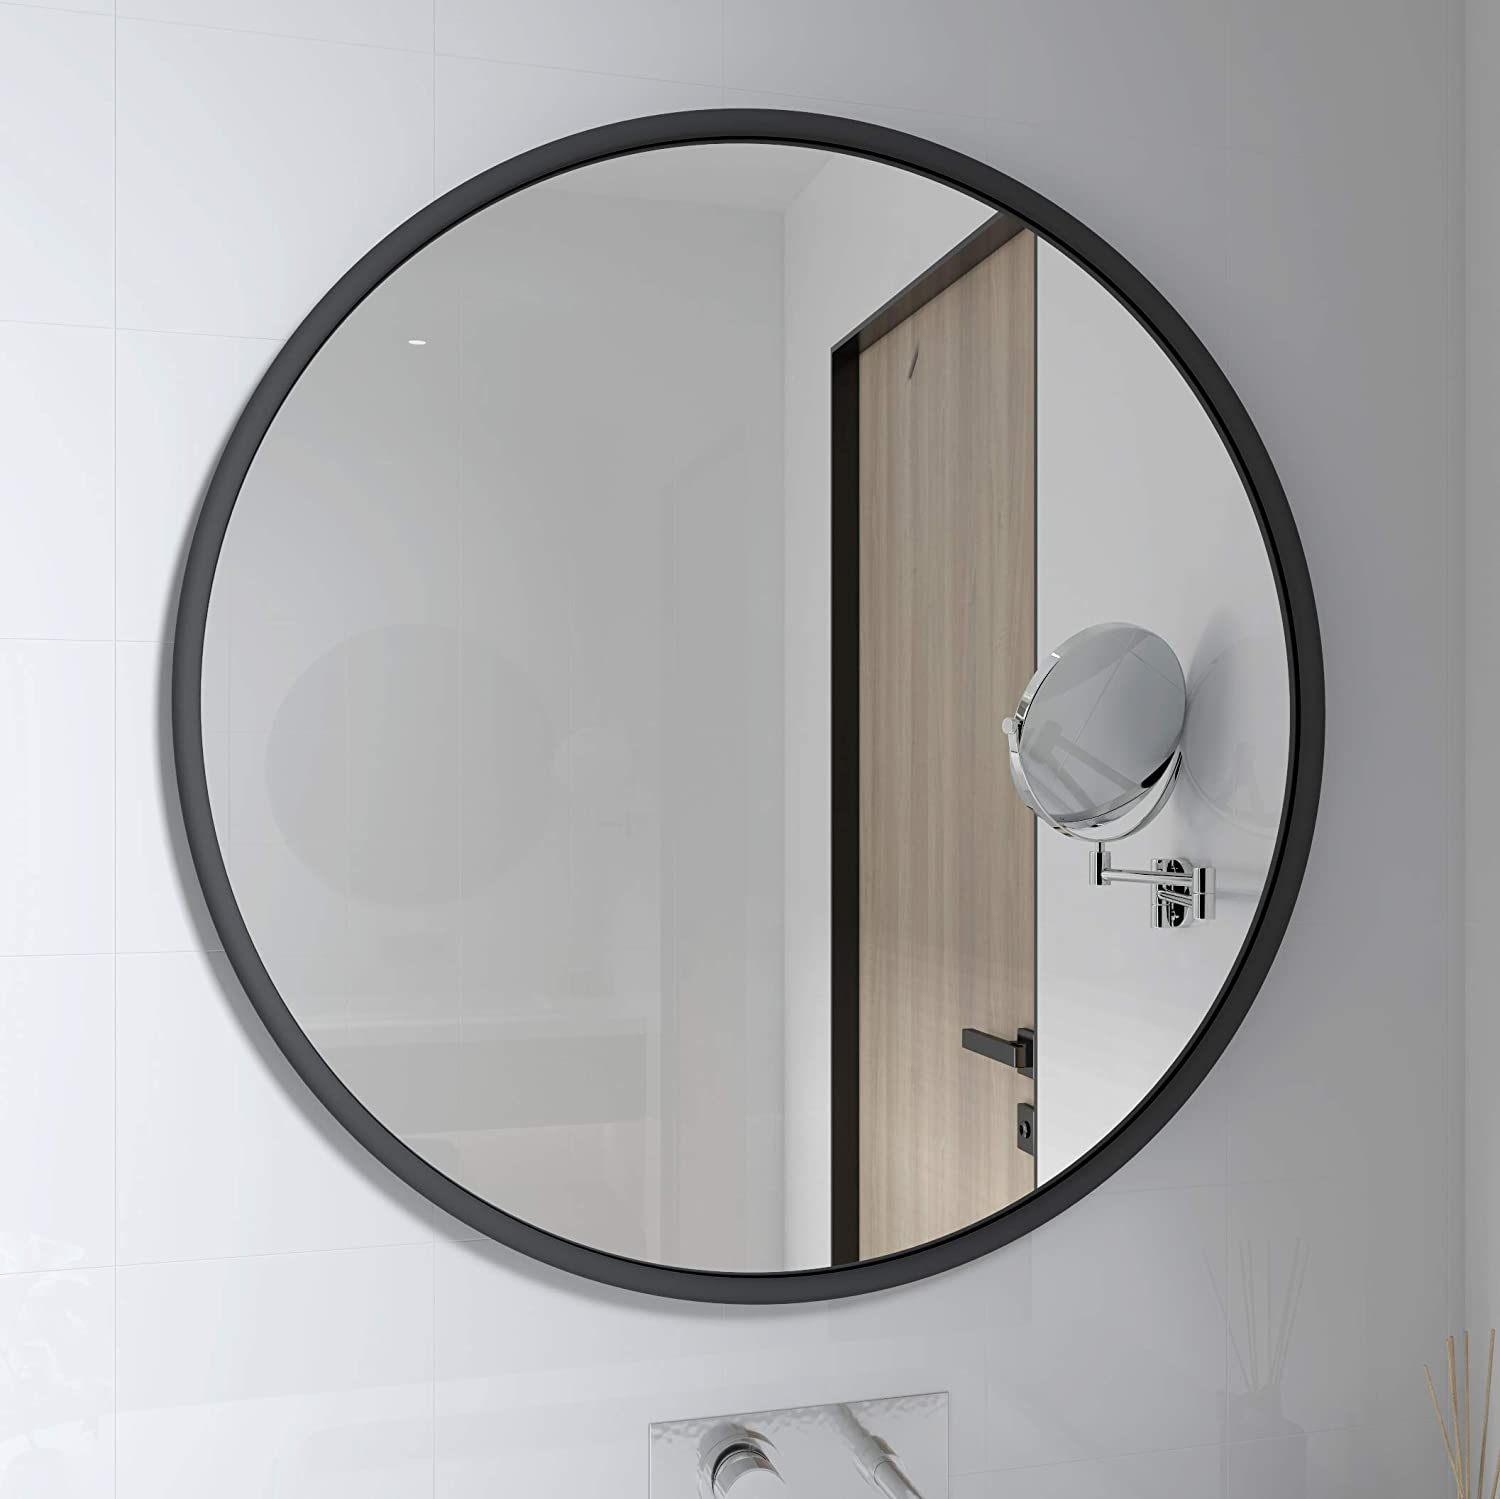 PROHOMEWARE Gold Round Bathroom Decorative Mirrors - Circle 18X18 Metal Frame Double Modern Vanity Beveled Bedroom Mirror Circular Farmhouse Rustic Vintage Above Couch Entryway Wall Silver Mirror